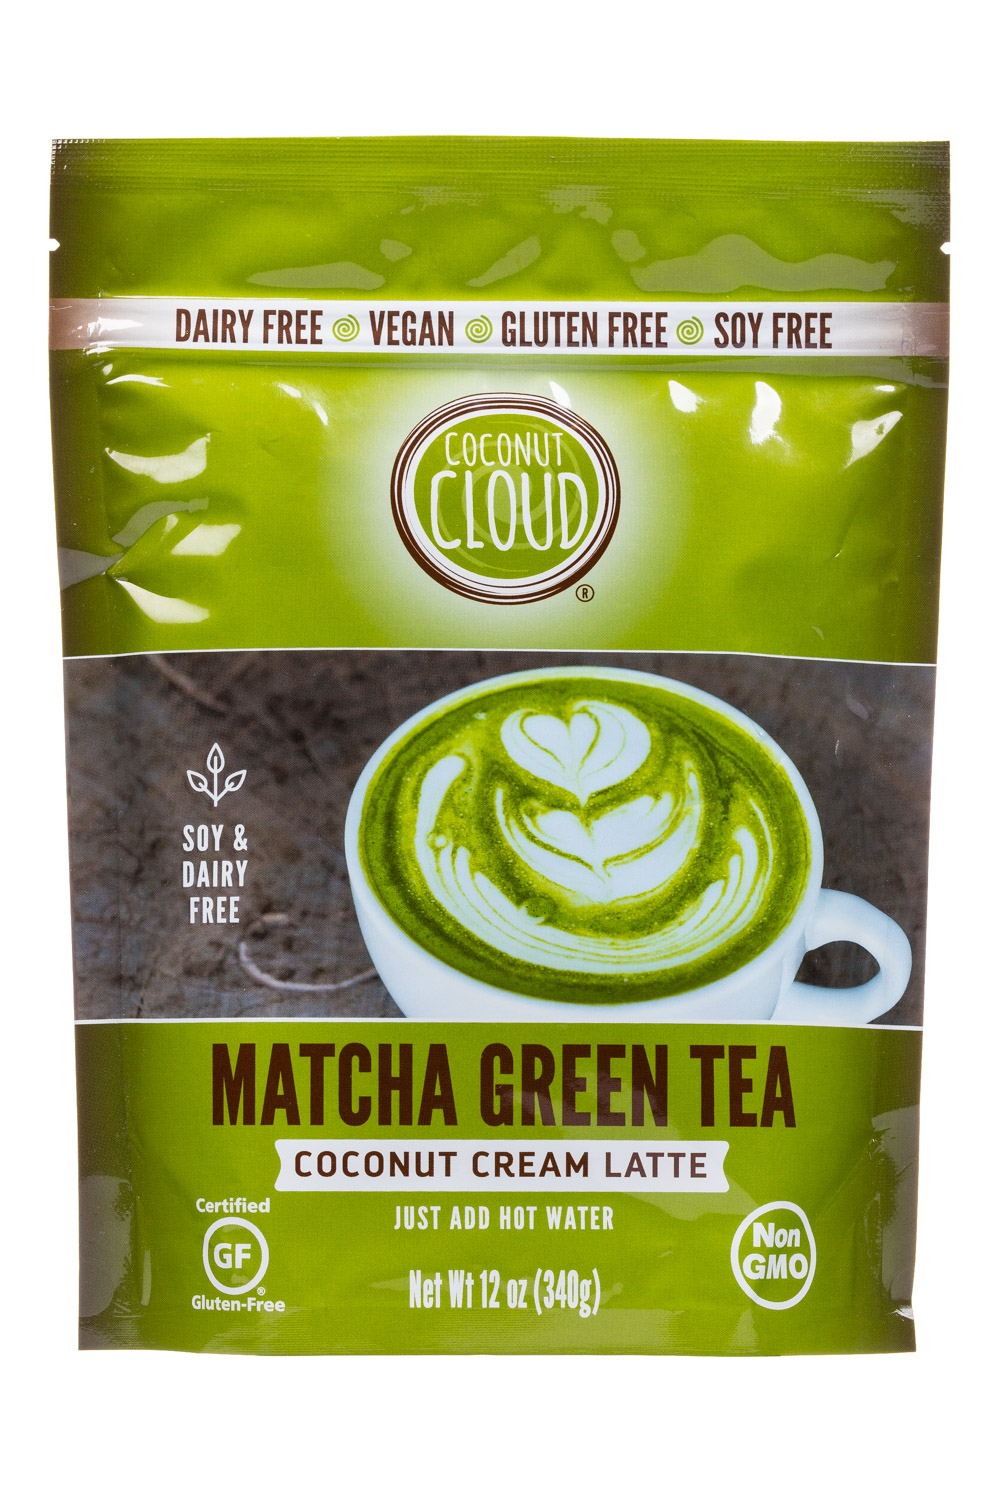 Matcha Green Tea (2018)